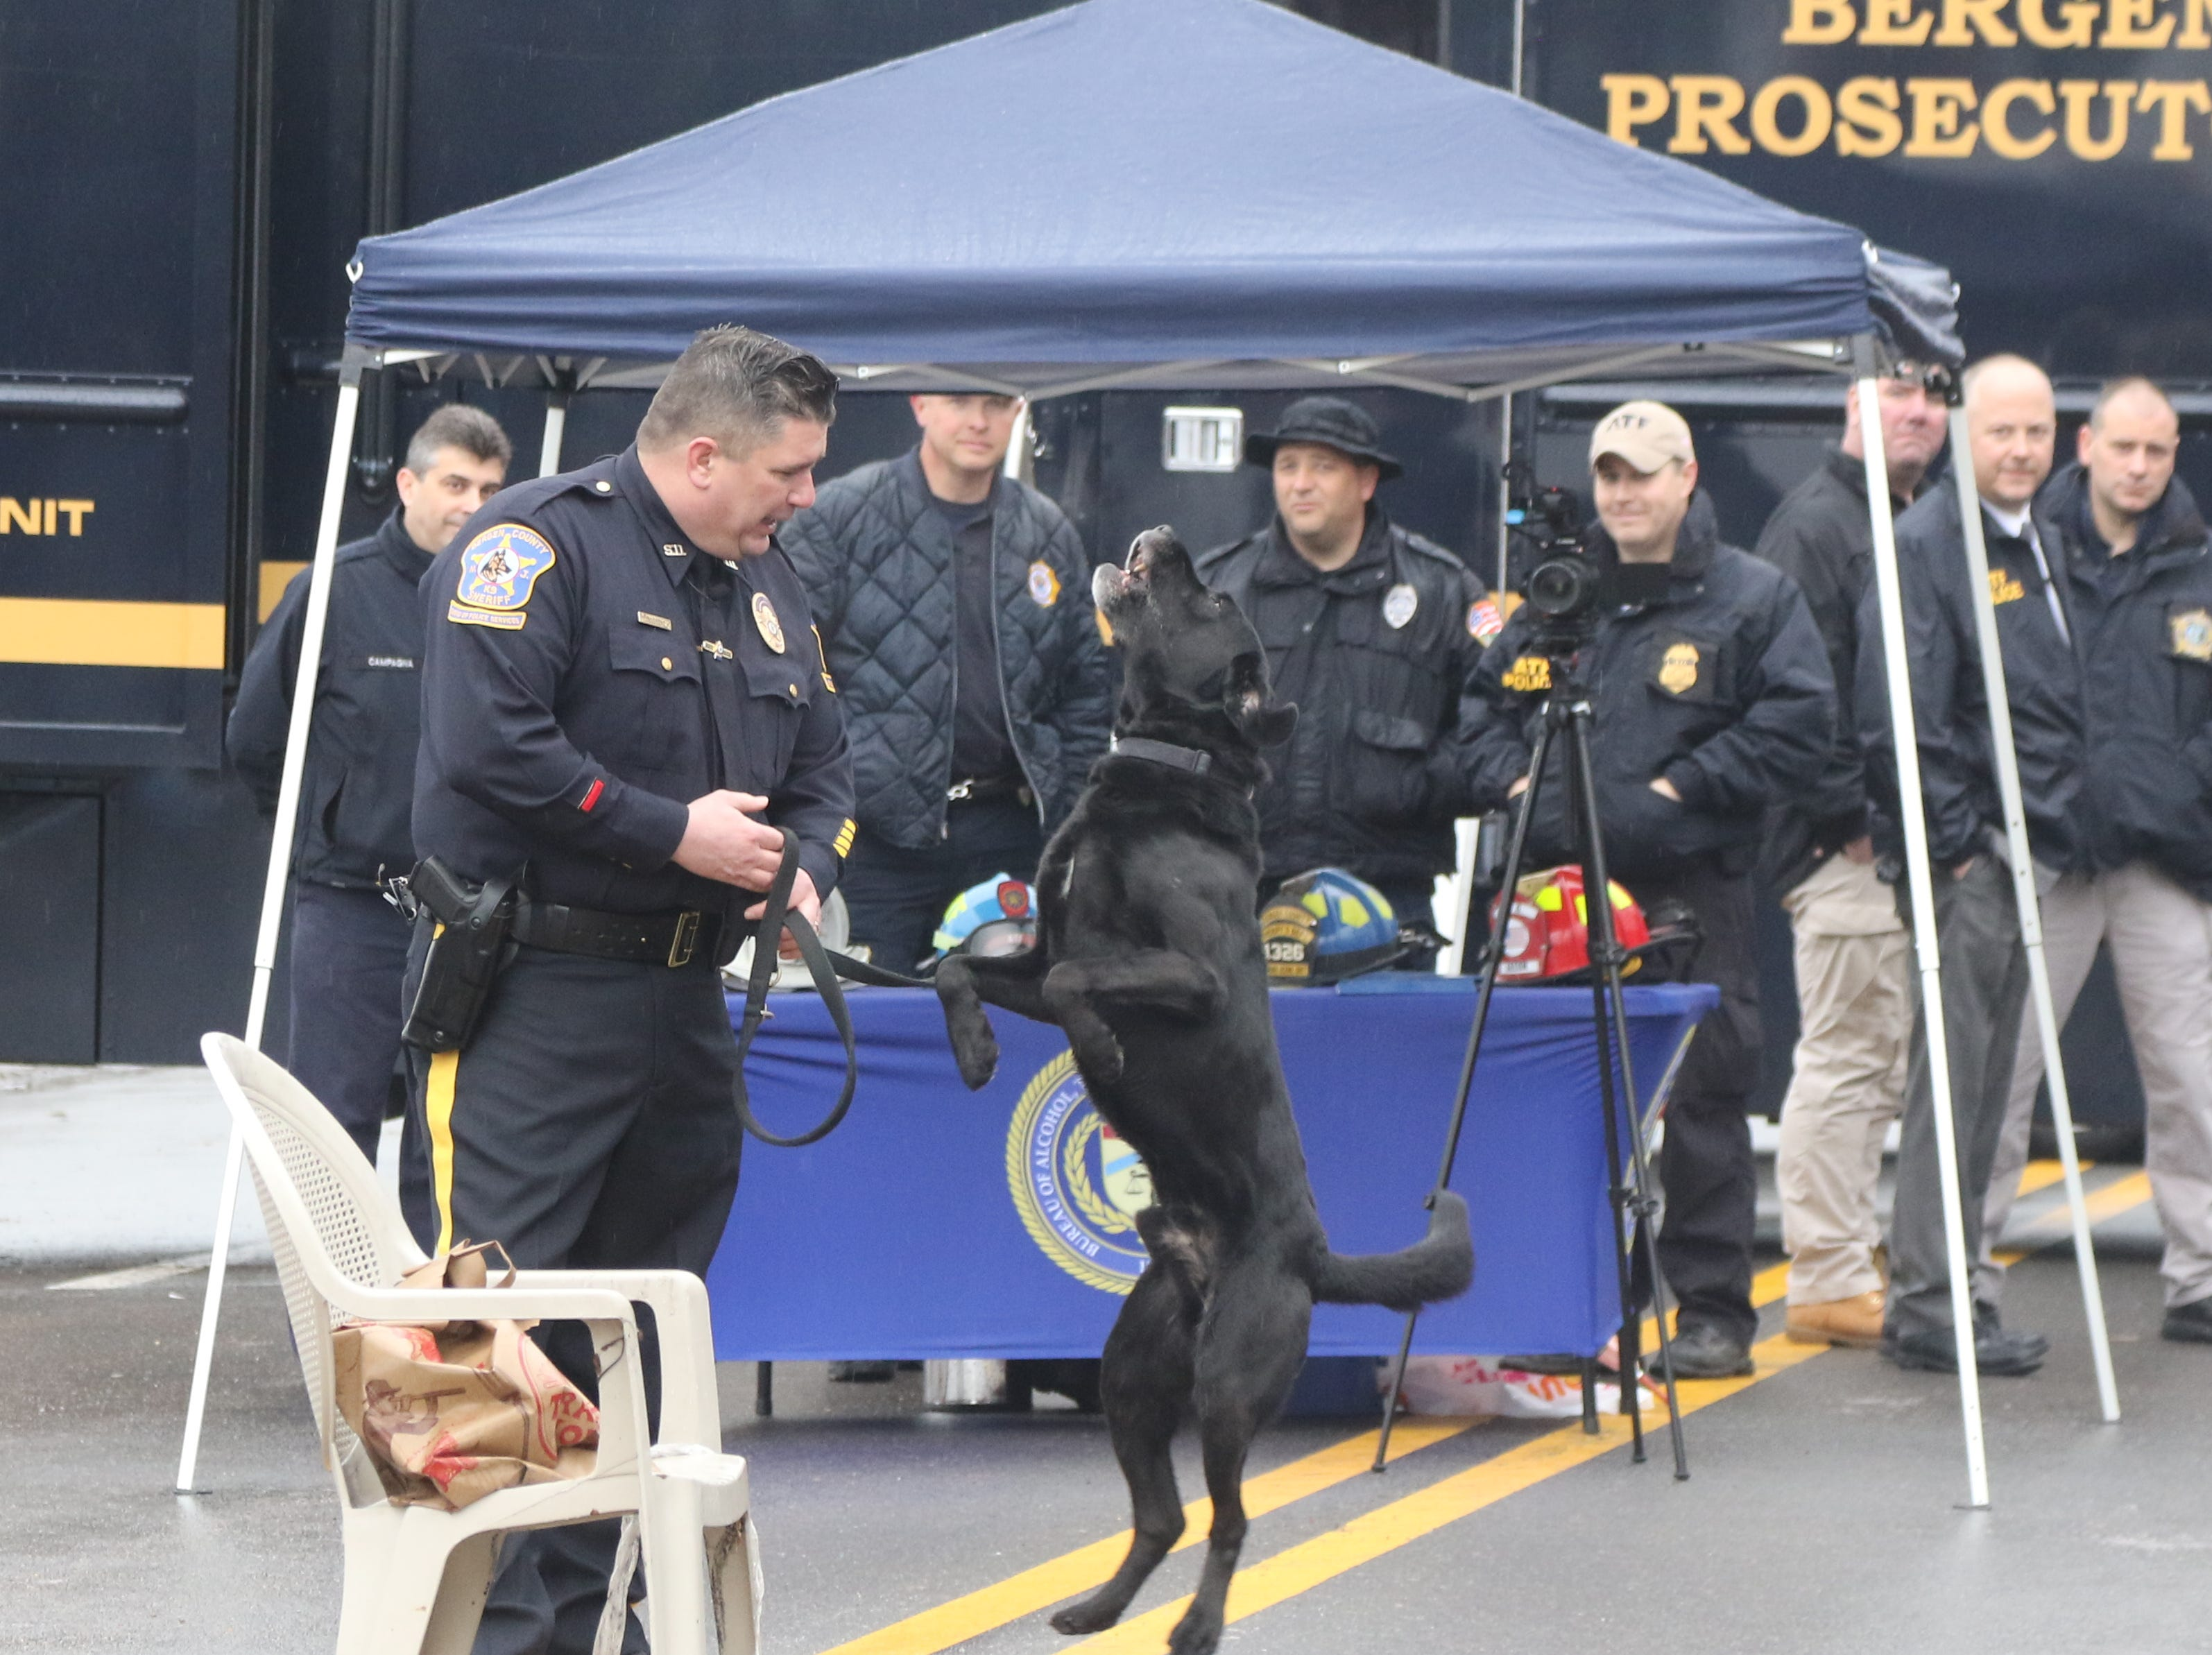 Bergen County Sheriff's Officer Les Lorenc with his dog Bubba before he shows how his dog sniffs out possible accelerants as part of a demonstration on the street outside the gates of the devastated paper company. The Bureau of Alcohol, Tobacco and Firearms along with the NJ State Fire Marshall and the Bergen County Sheriff's Office demonstrate how specially trained dogs sniff out possible accelerants and explosives that may have possibly been used at the site of the Marcal fire. The demonstration took place at the Marcal site on February 8, 2019.